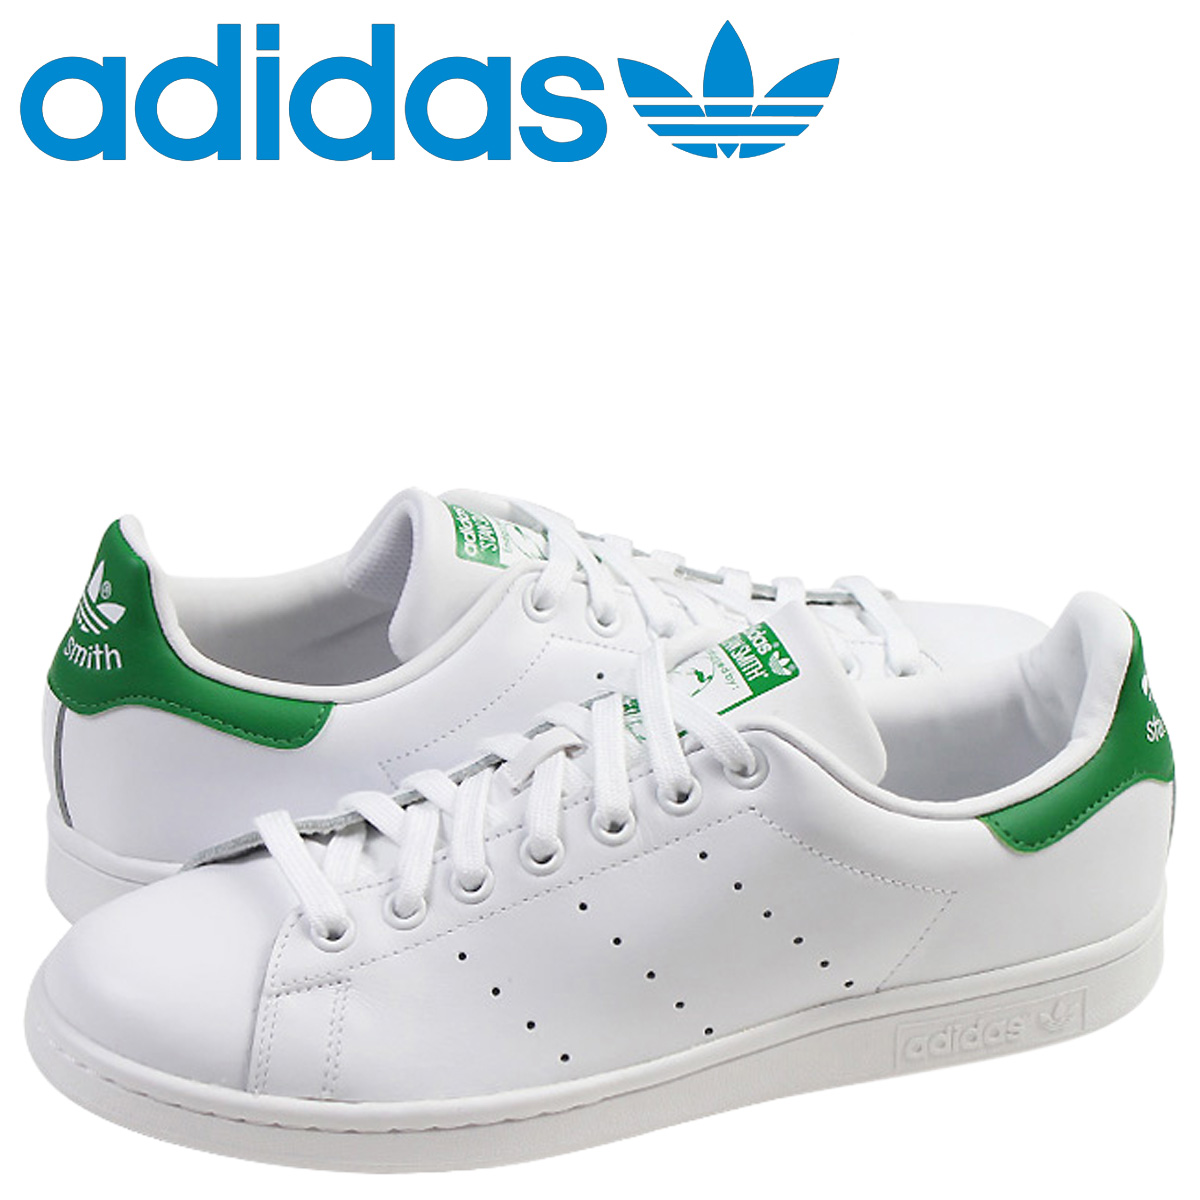 ALLSPORTS   SOLD OUT  adidas originals adidas Originals STAN SMITH sneakers  Stan Smith leather men s women s M20324 white green unisex  regular  ... 558f24d64be